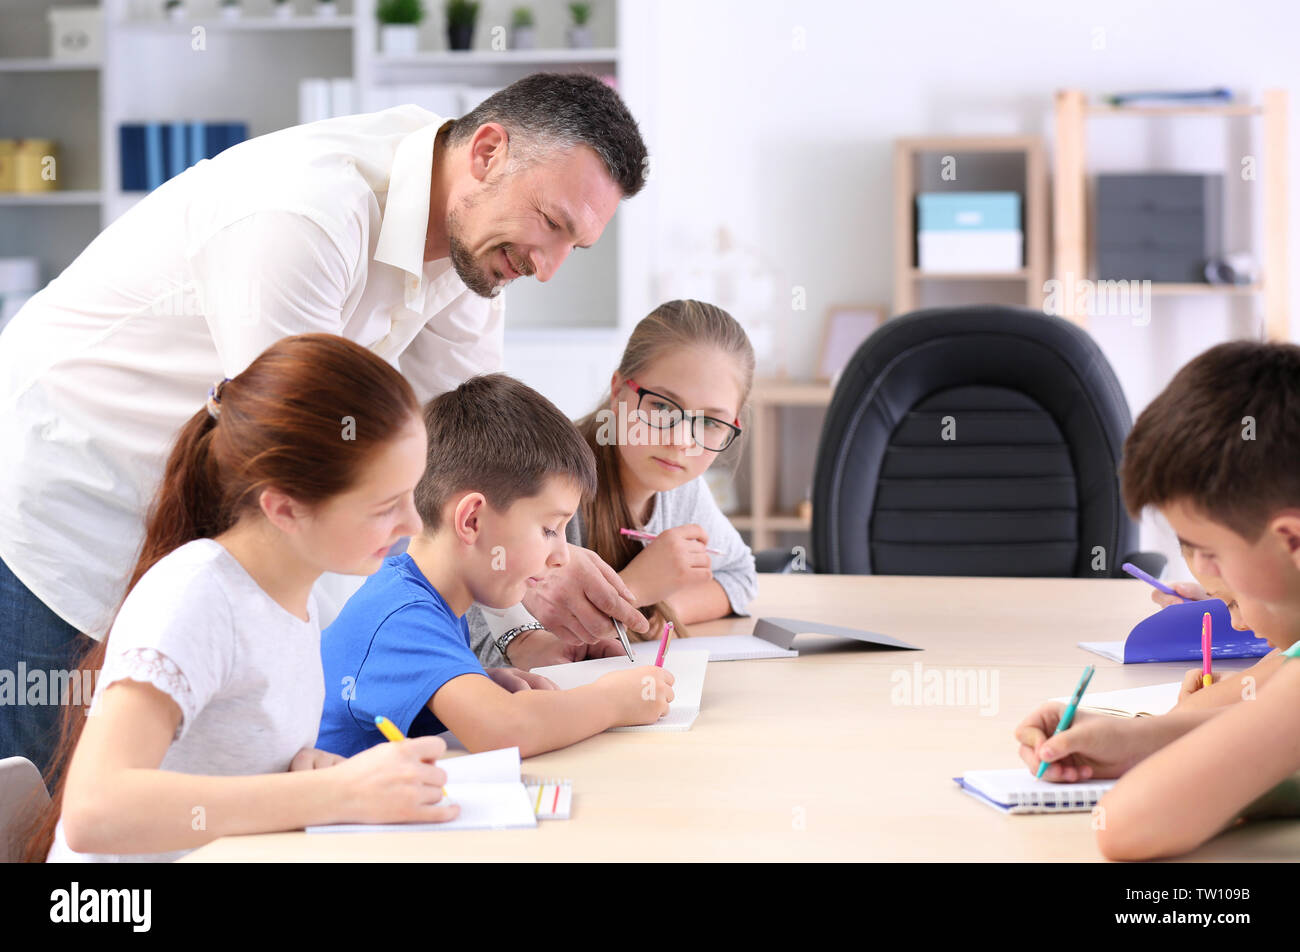 Male teacher conducting lesson in classroom - Stock Image